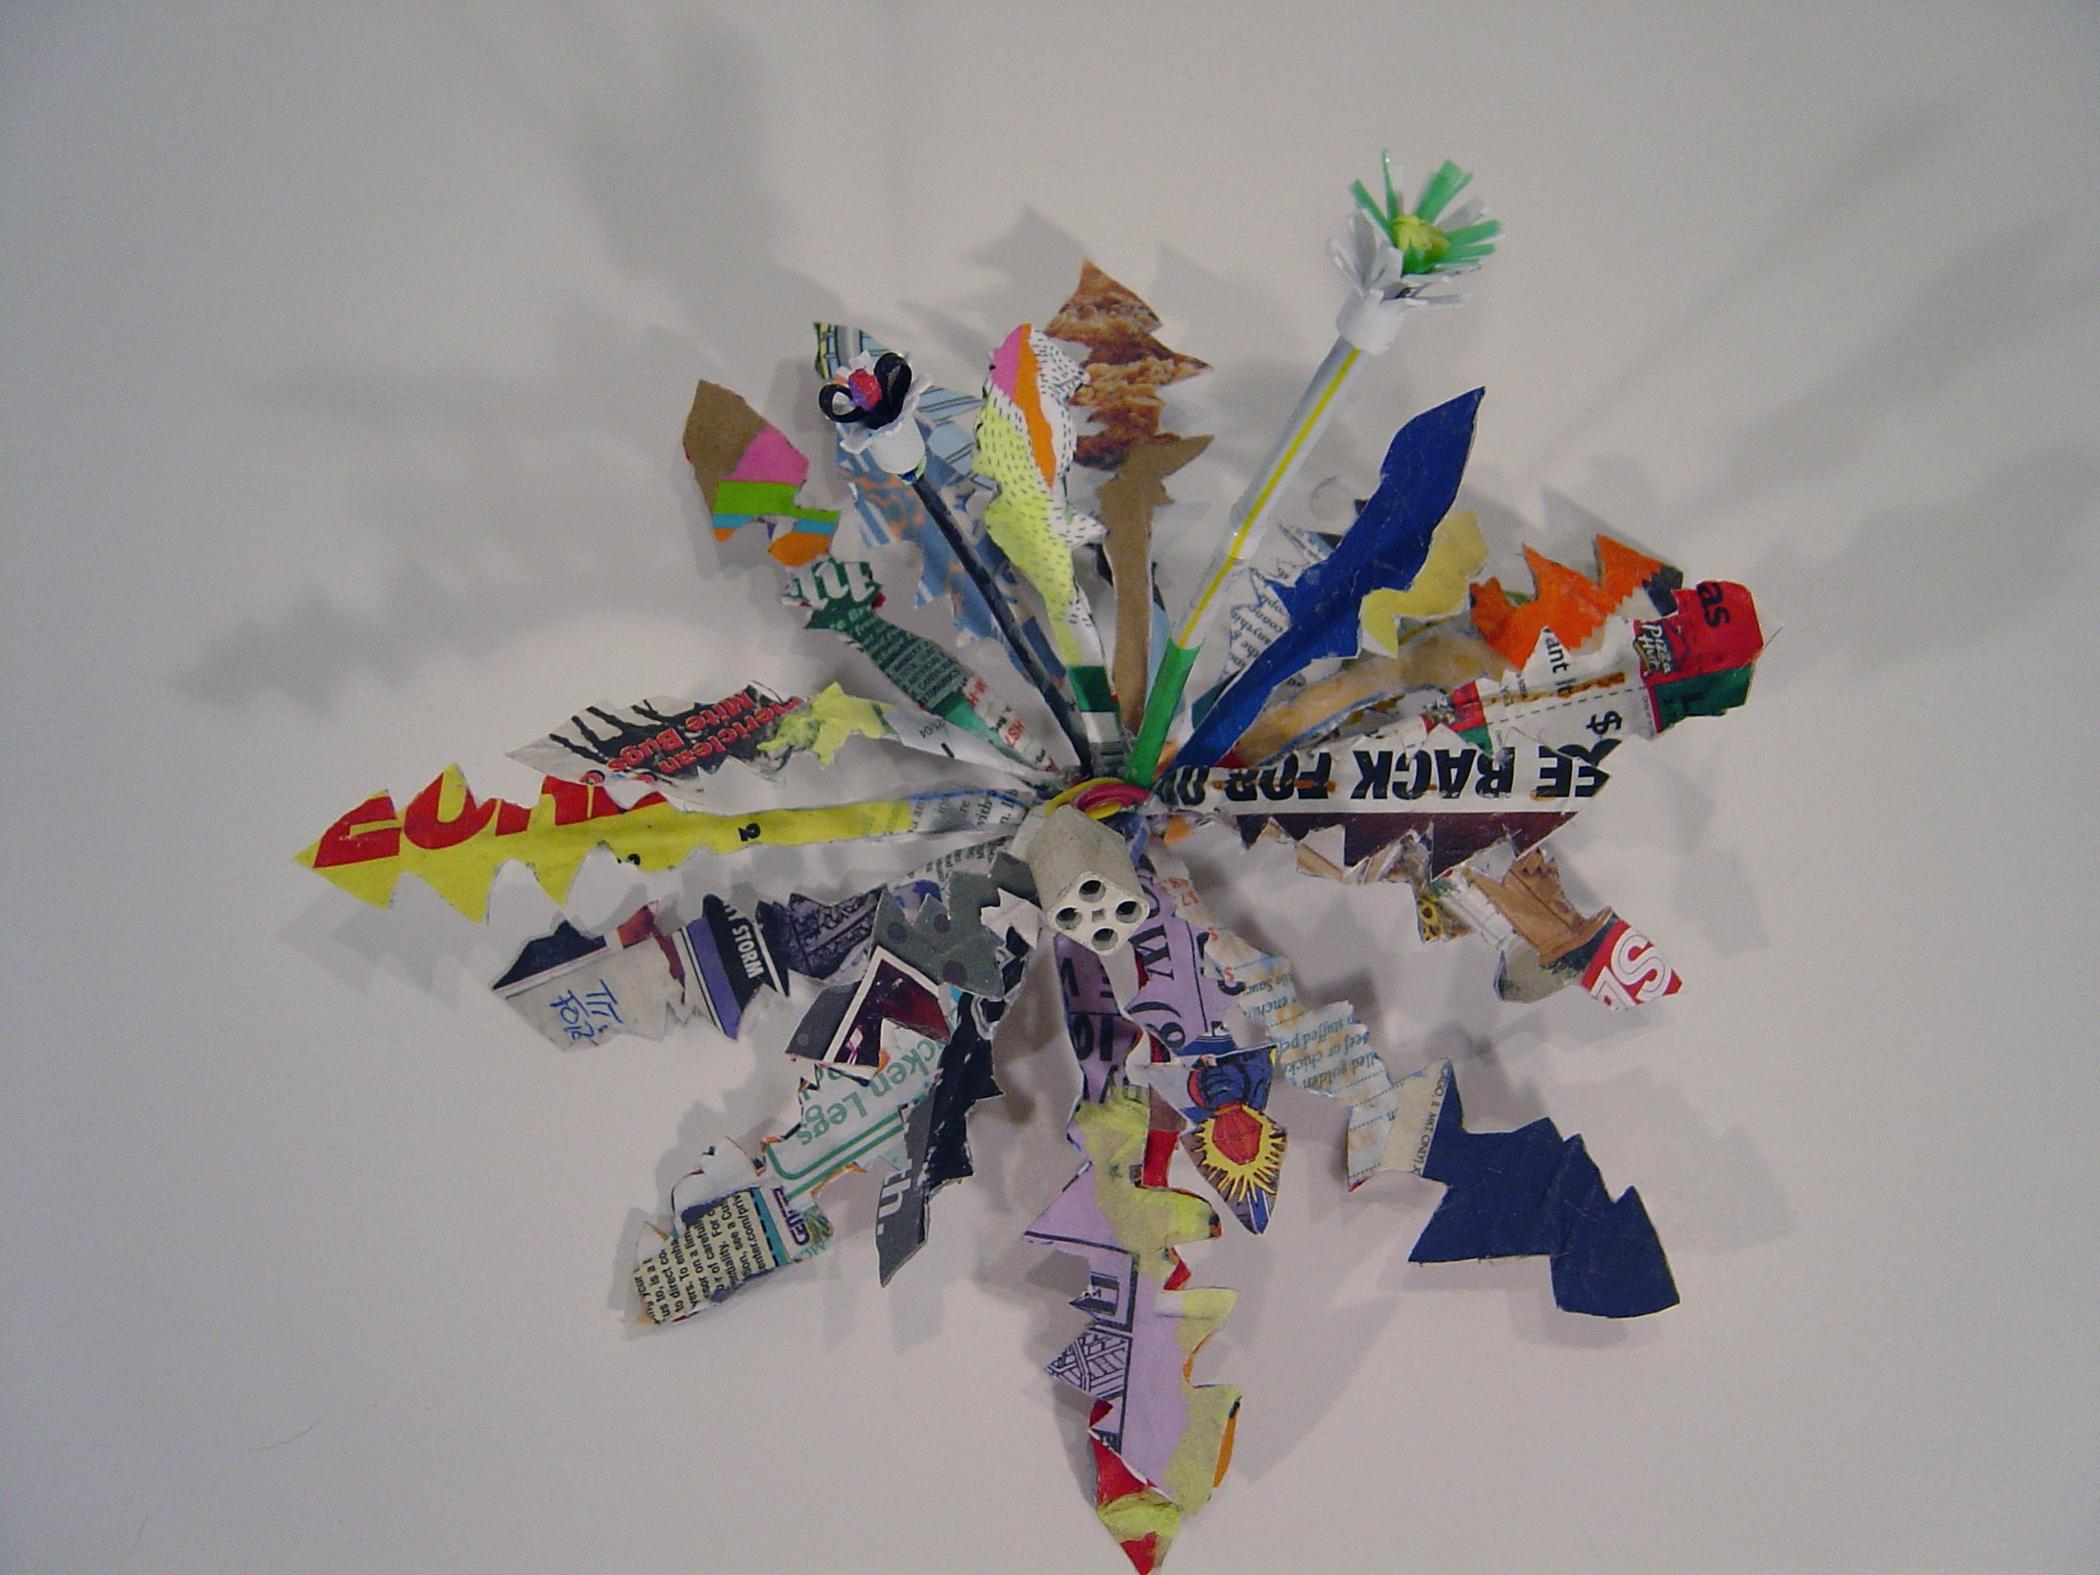 Colorful paper cut into zig-zags form a firework shaped sculpture hung on a wall